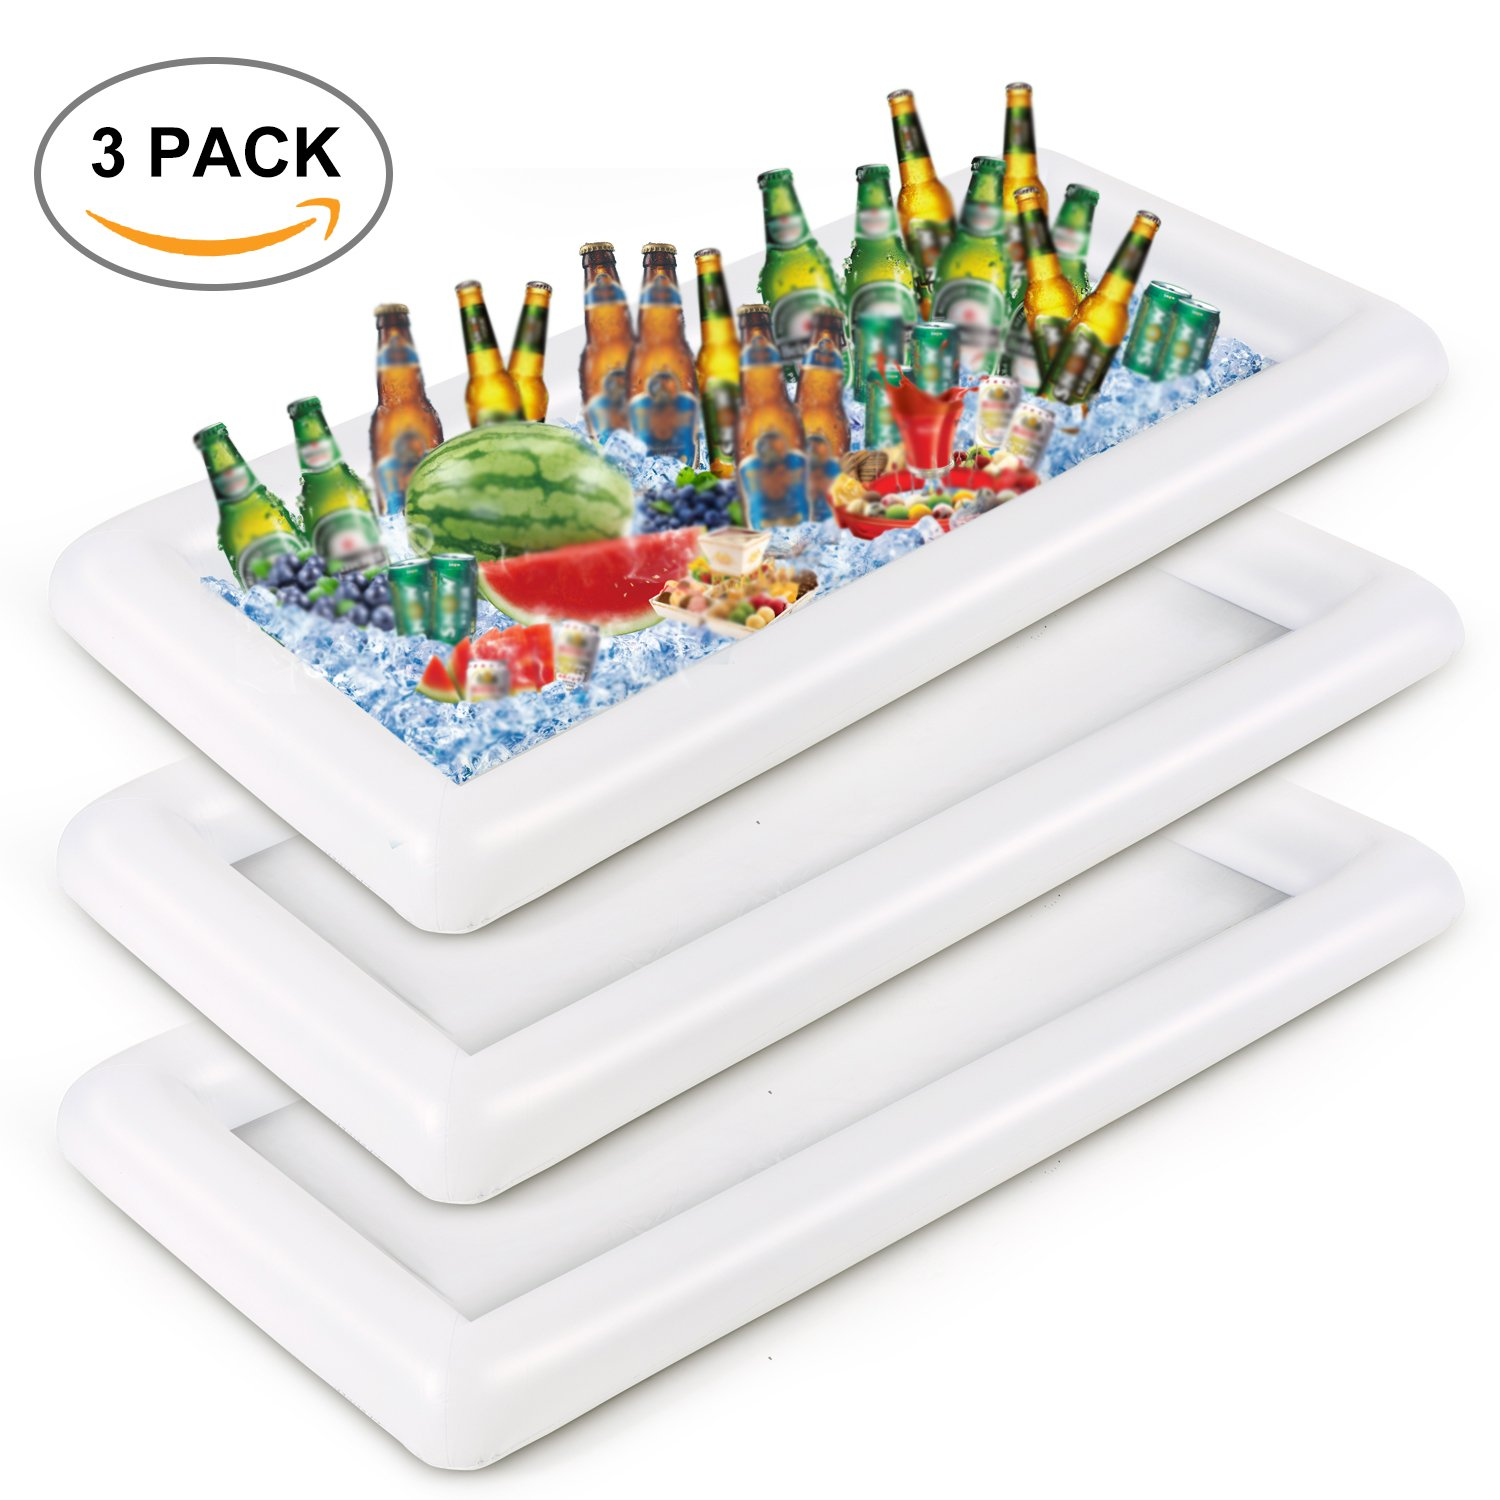 SMAGREHO Inflatable Serving Bar Salad Ice Tray Food Drink Containers with a Drain Plug for BBQ Picnic Pool Party Supplies Buffet Luau Cooler(3 pcs)